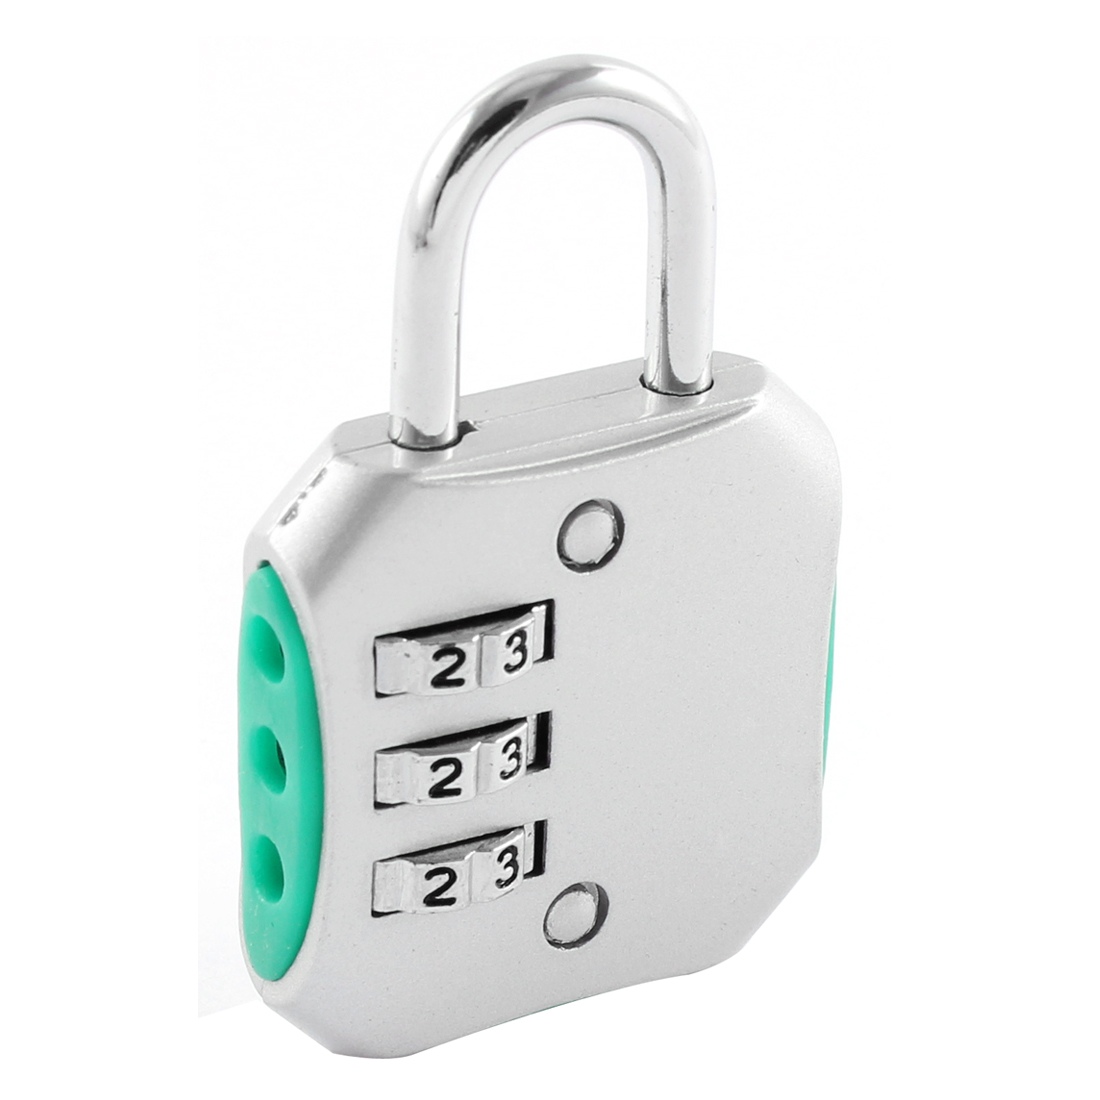 Suitcase Luggage 3 Dial Resettable Digit Password Combination Lock Padlock